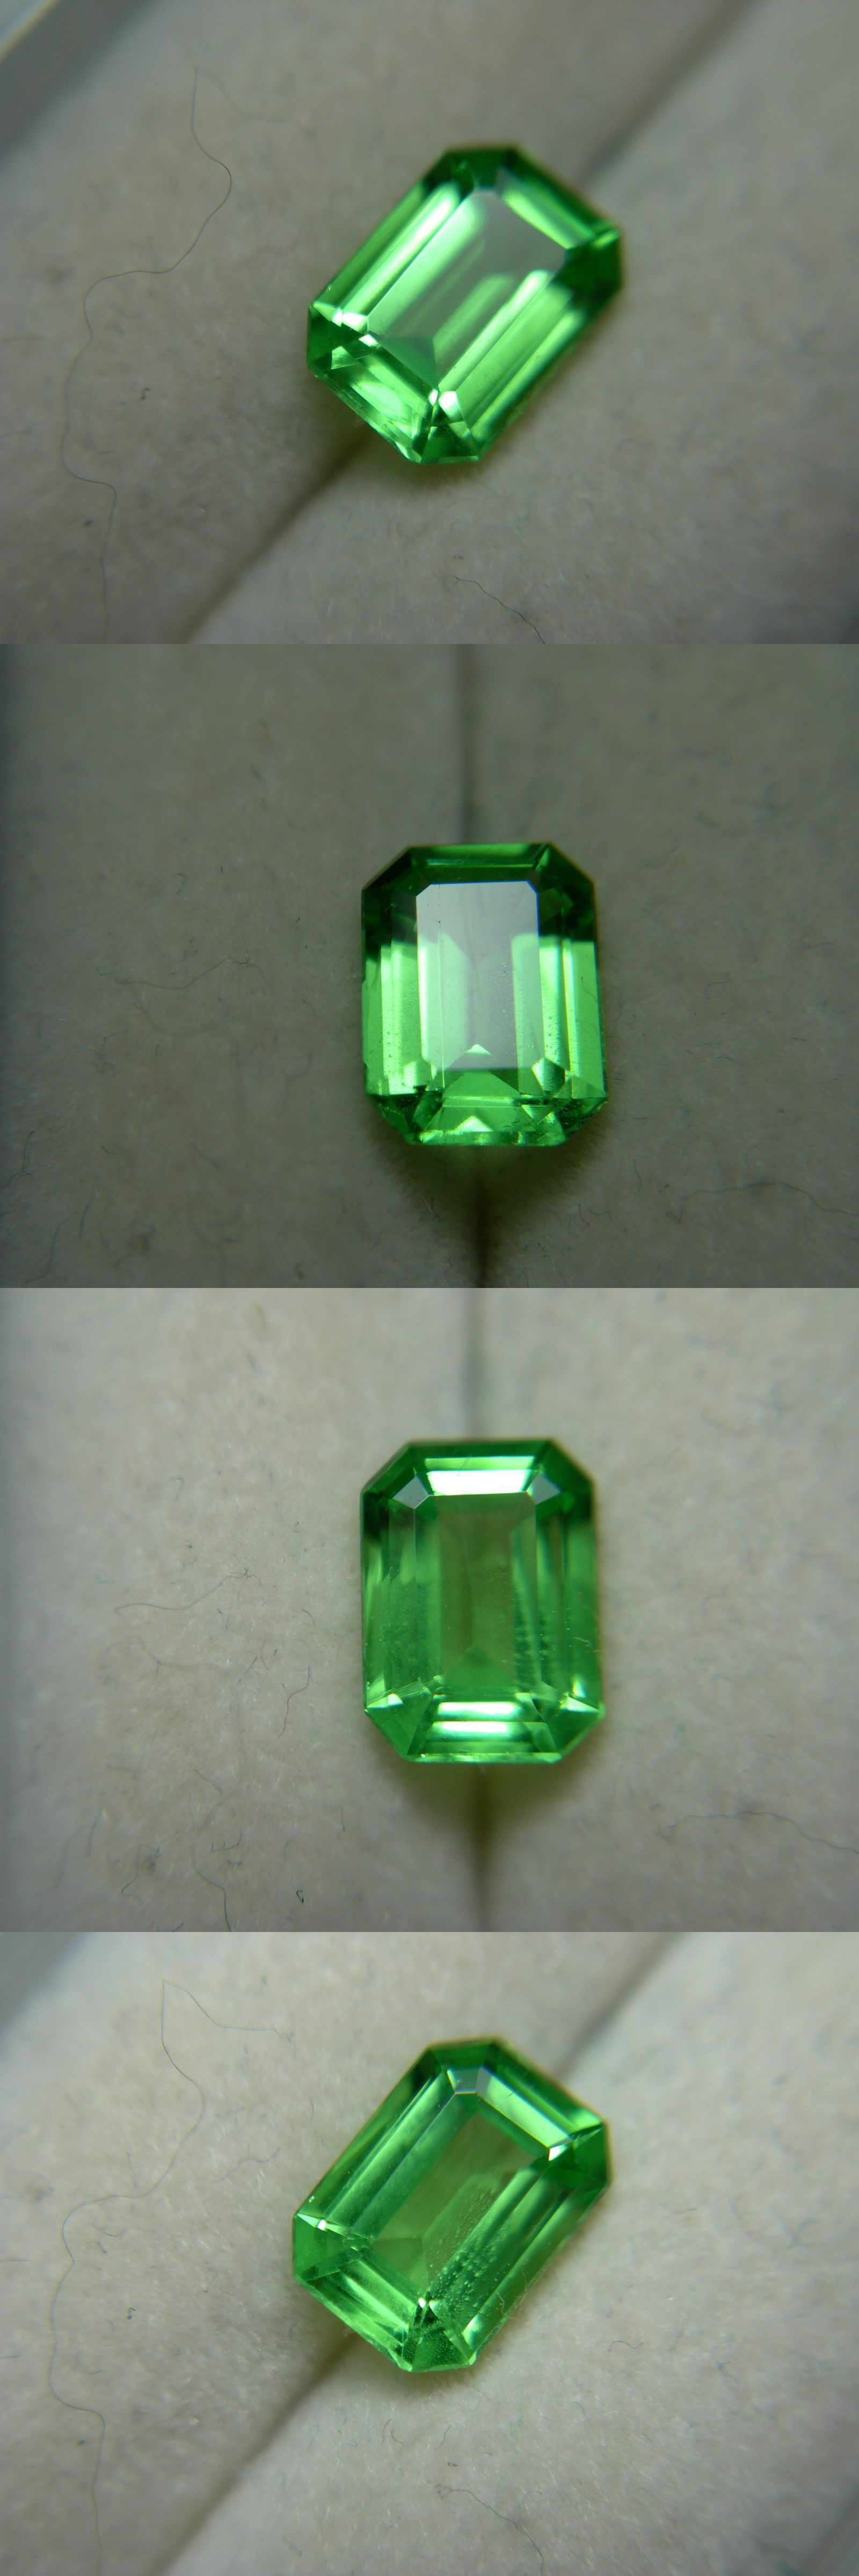 suppliers high rated quality showroom garnet wholesale tsavorite top gemstone alibaba green